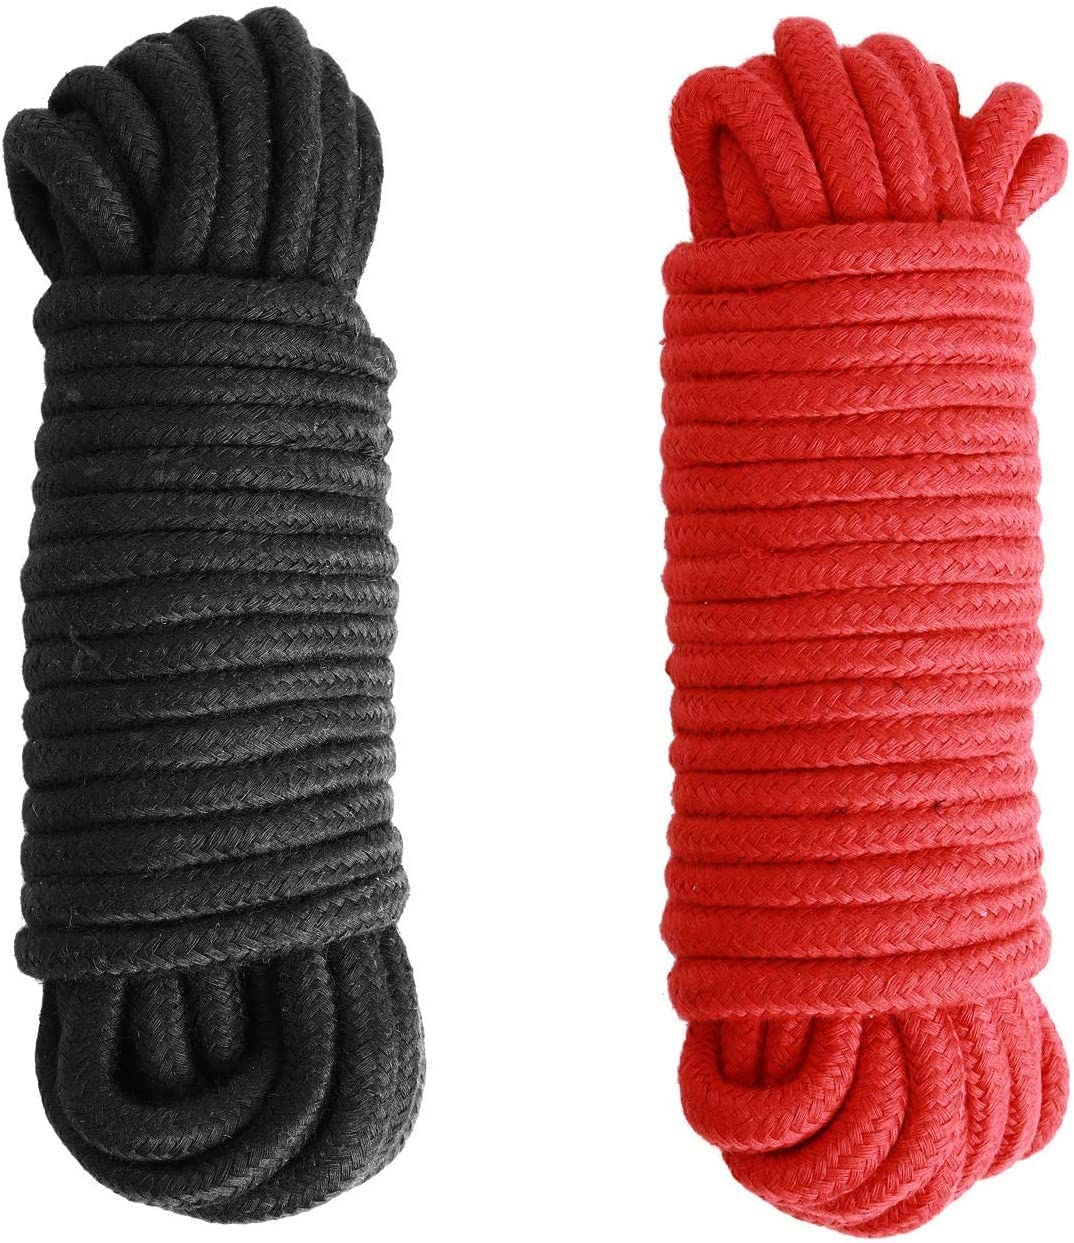 Black Red Soft Cotton Rope-32 feet 10m Multi-Function Natural Durable Long Rope 2 Pack